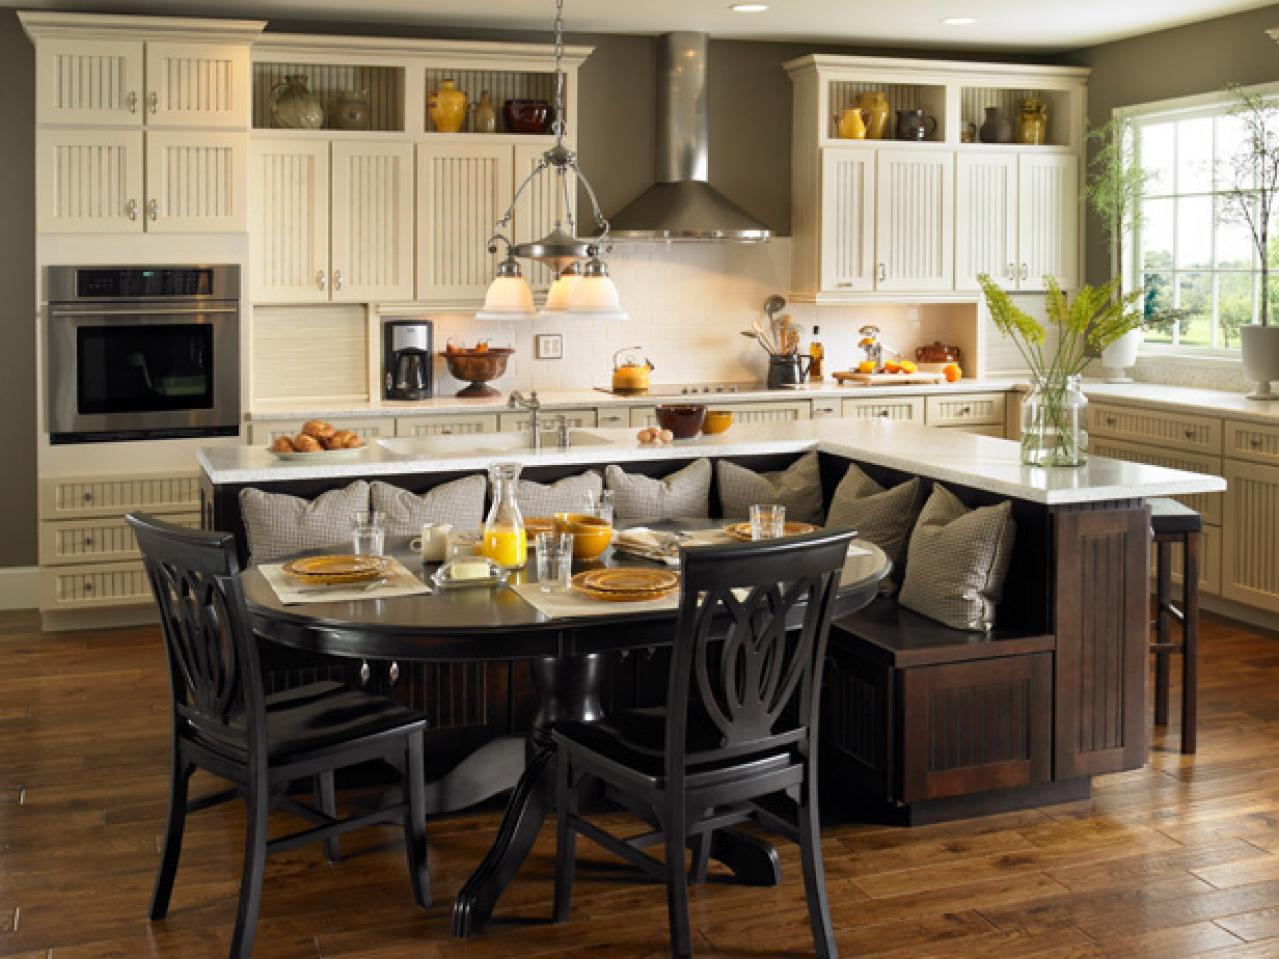 The Best Kitchen Design With Island As A Table